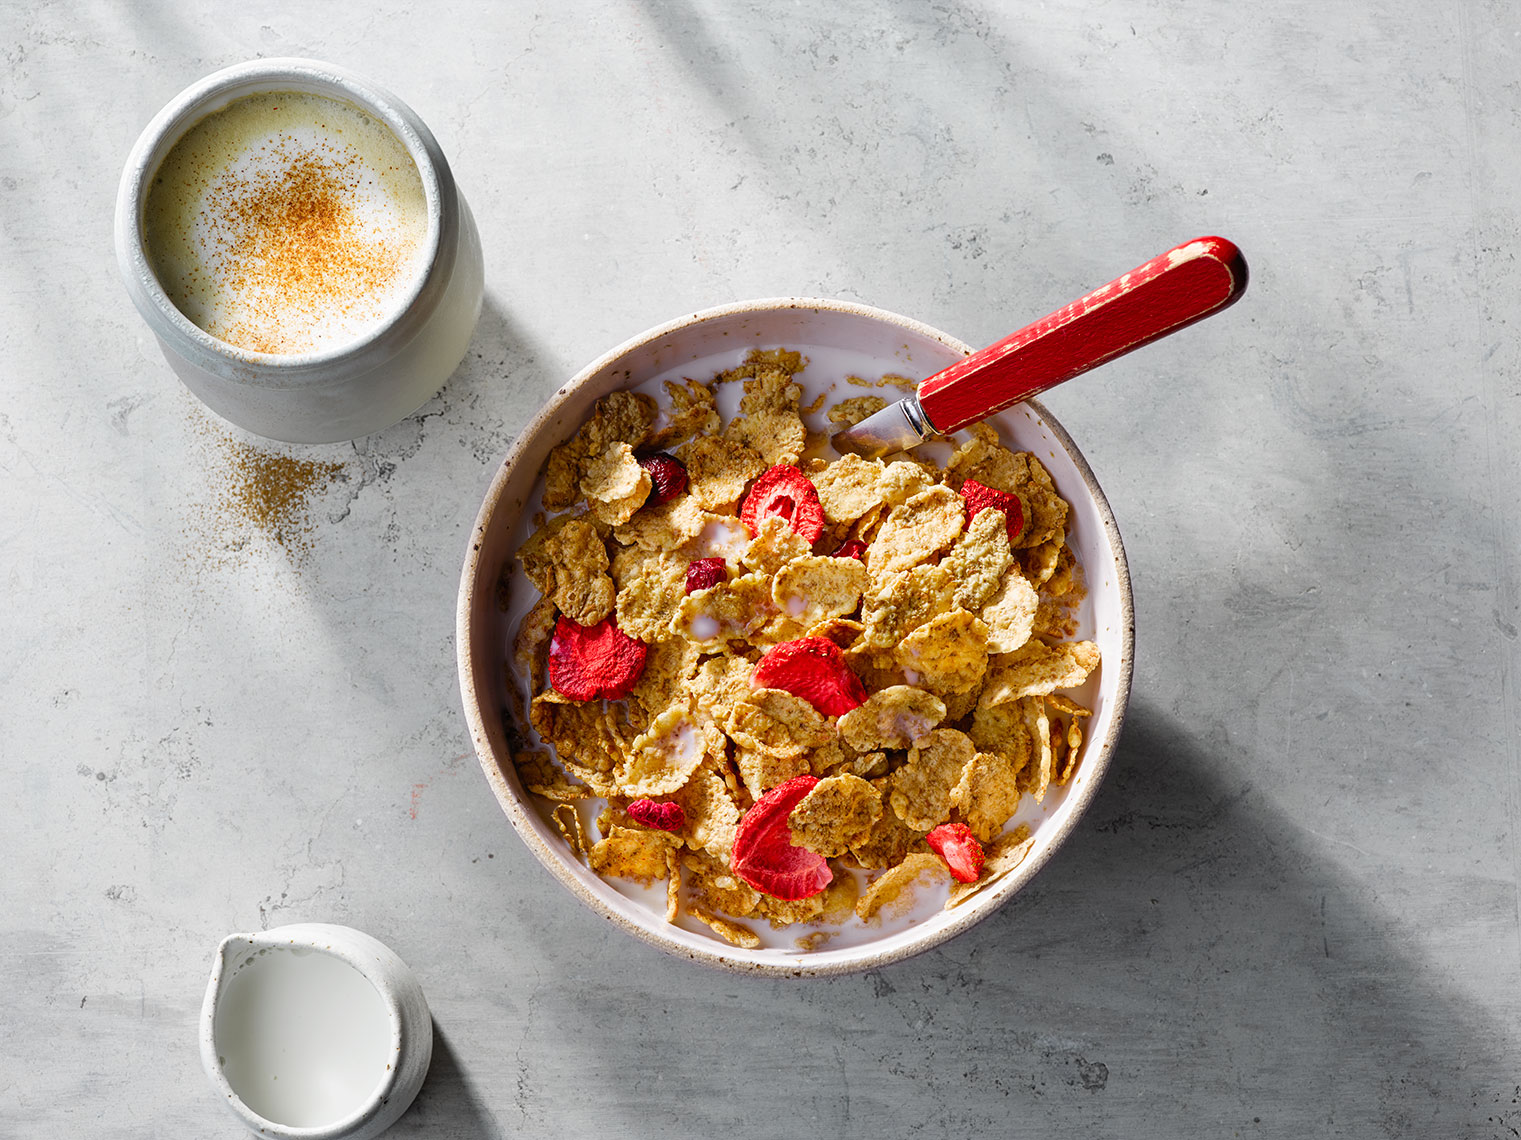 Special K Cereal 2 | Colin Campbell-Food Photographer